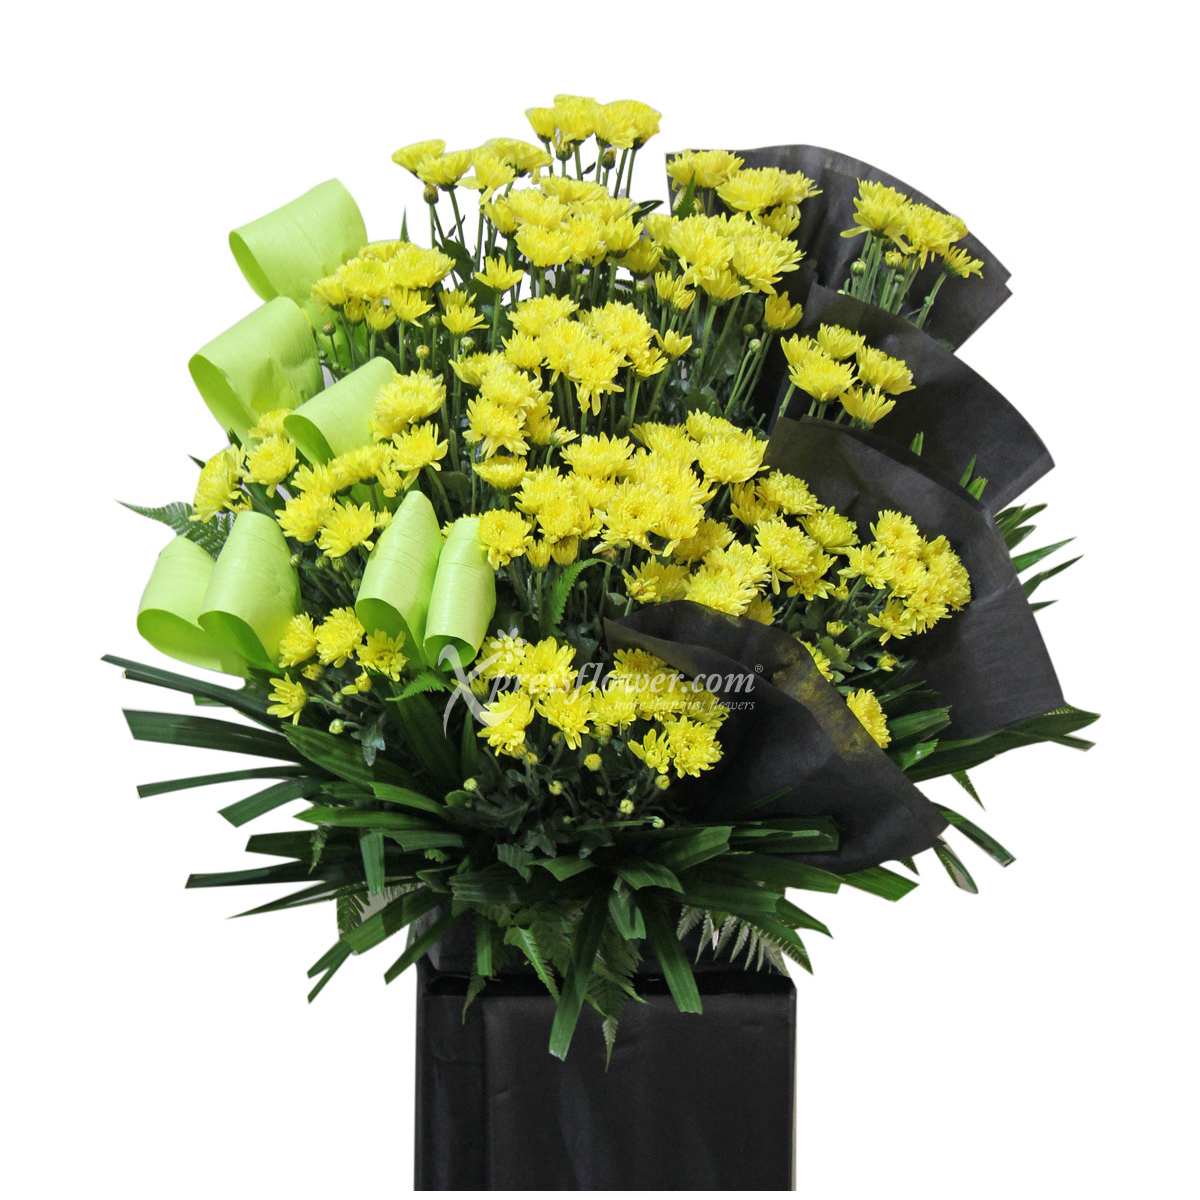 SC1714 fond memories condolence flower wreath stands